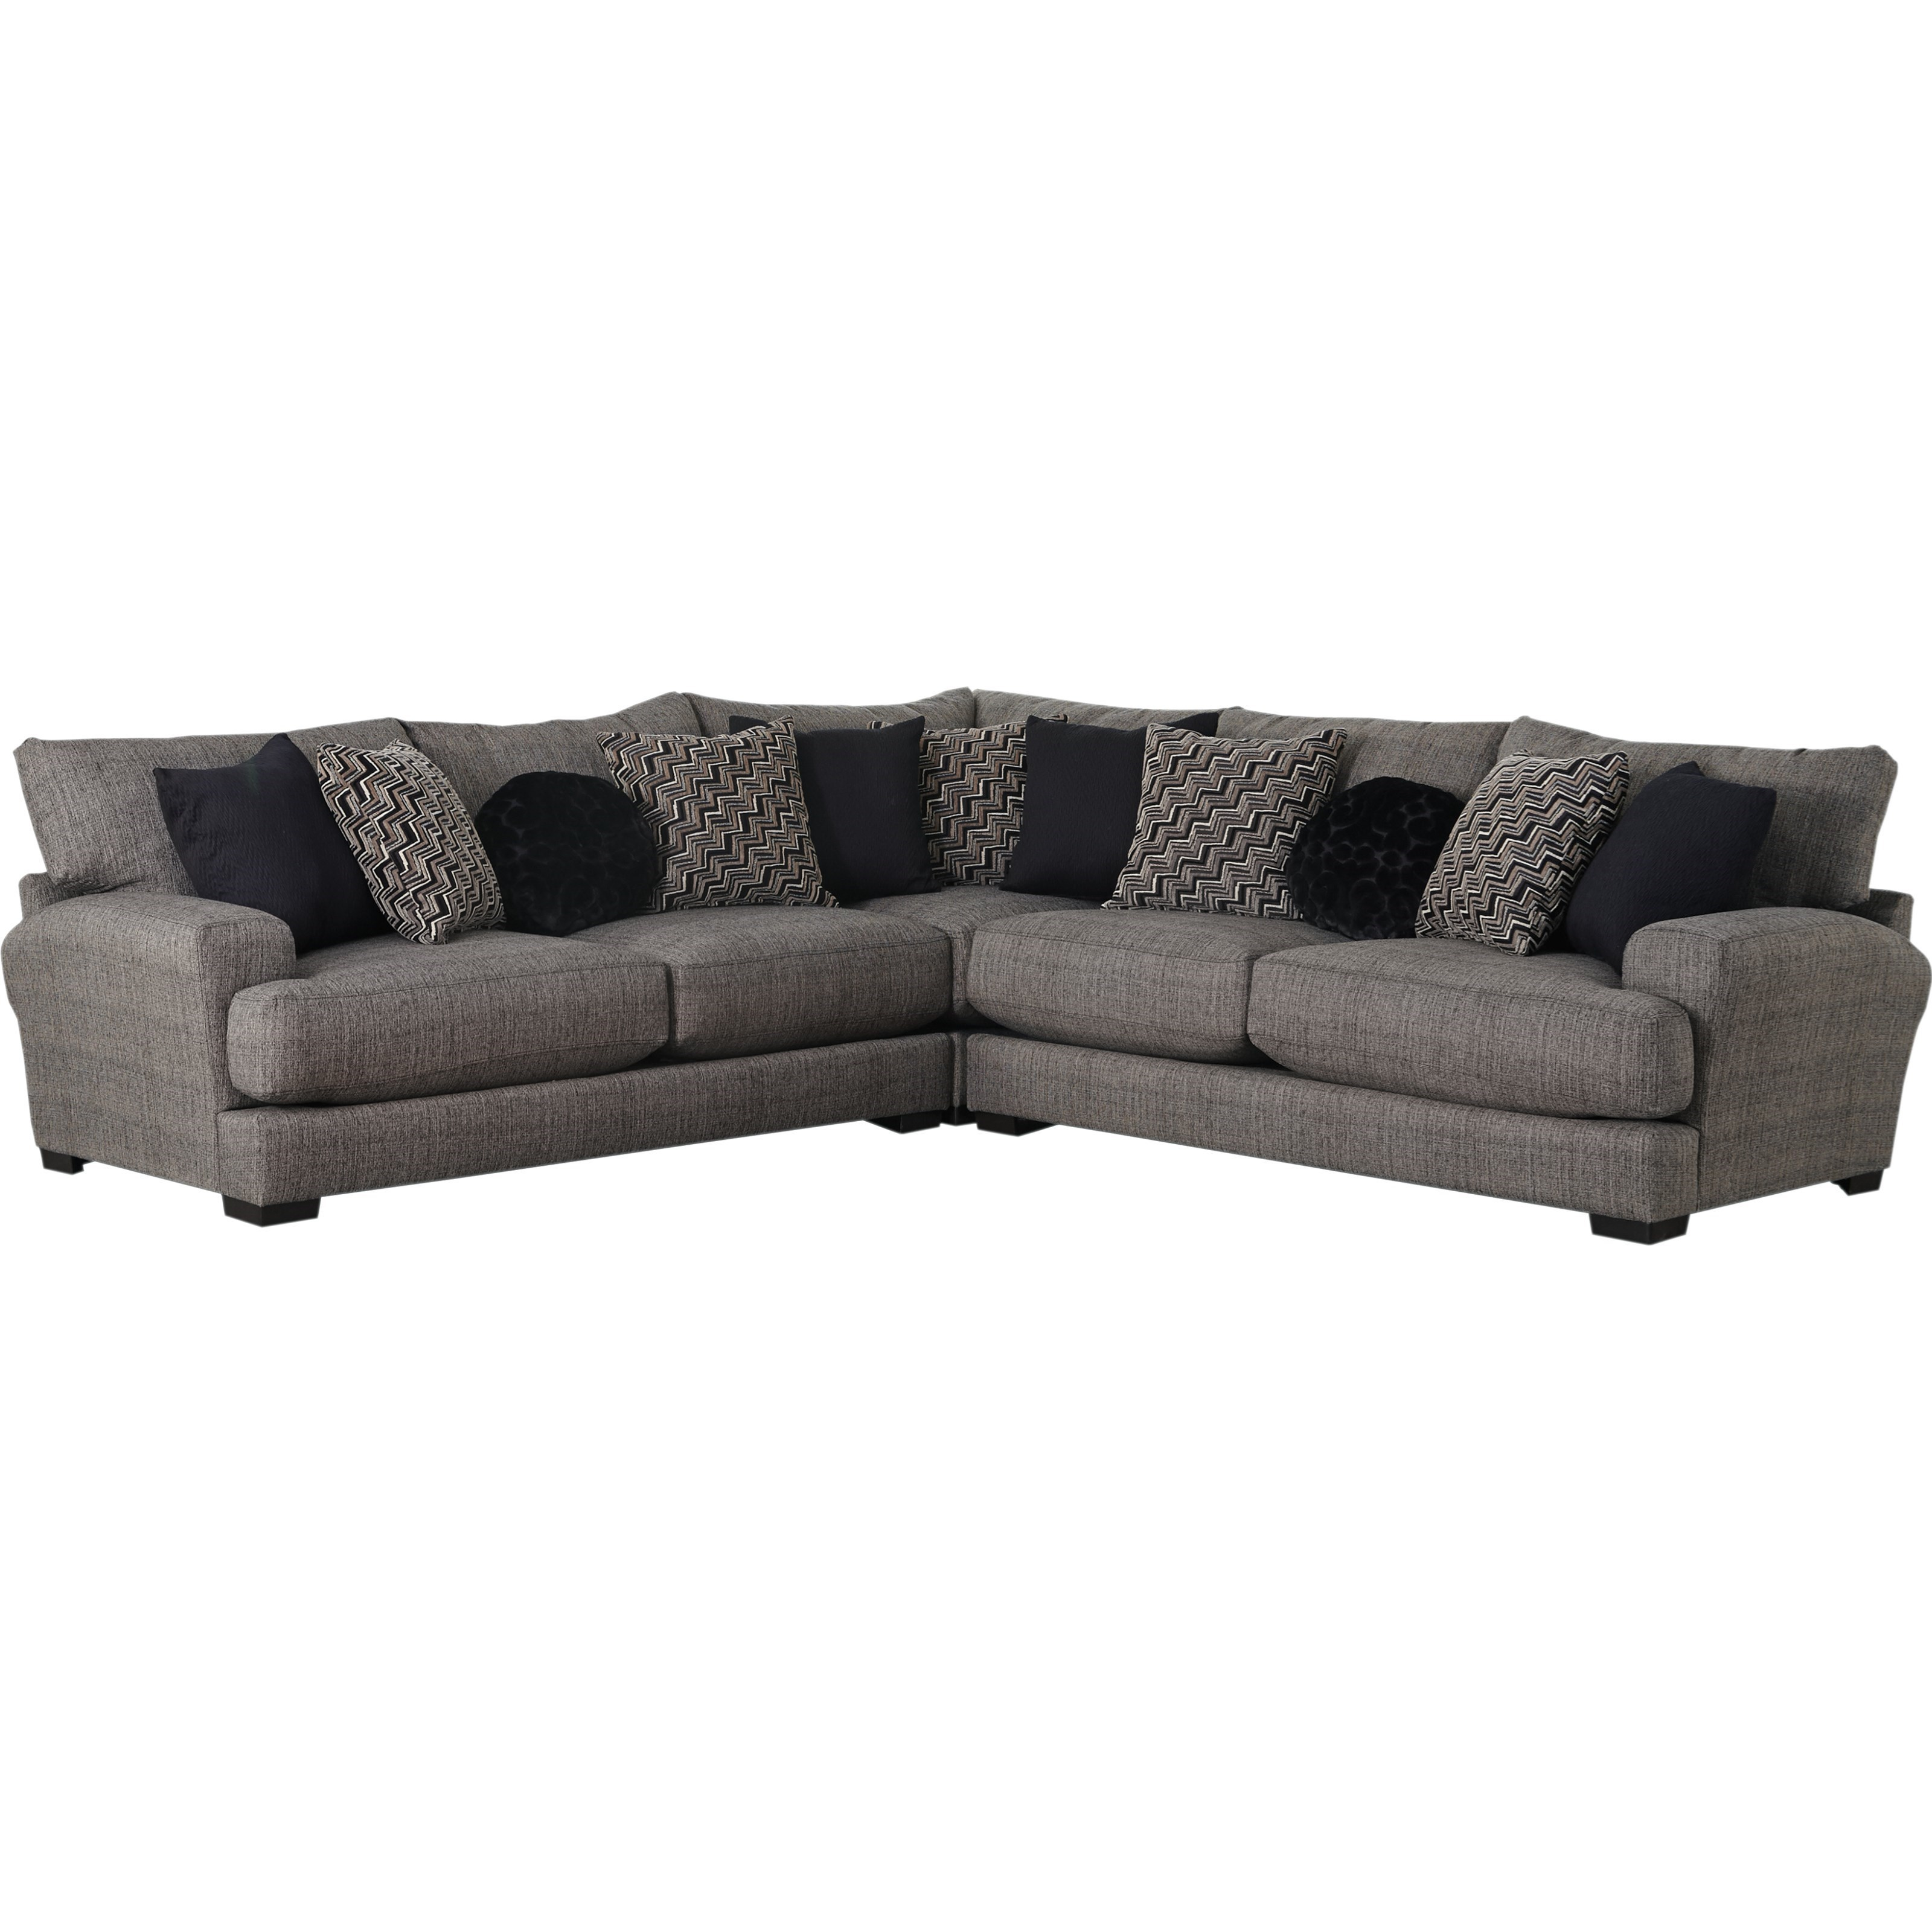 Ava Sectional Sofa with 4 Seats & USB Ports by Jackson Furniture at Northeast Factory Direct